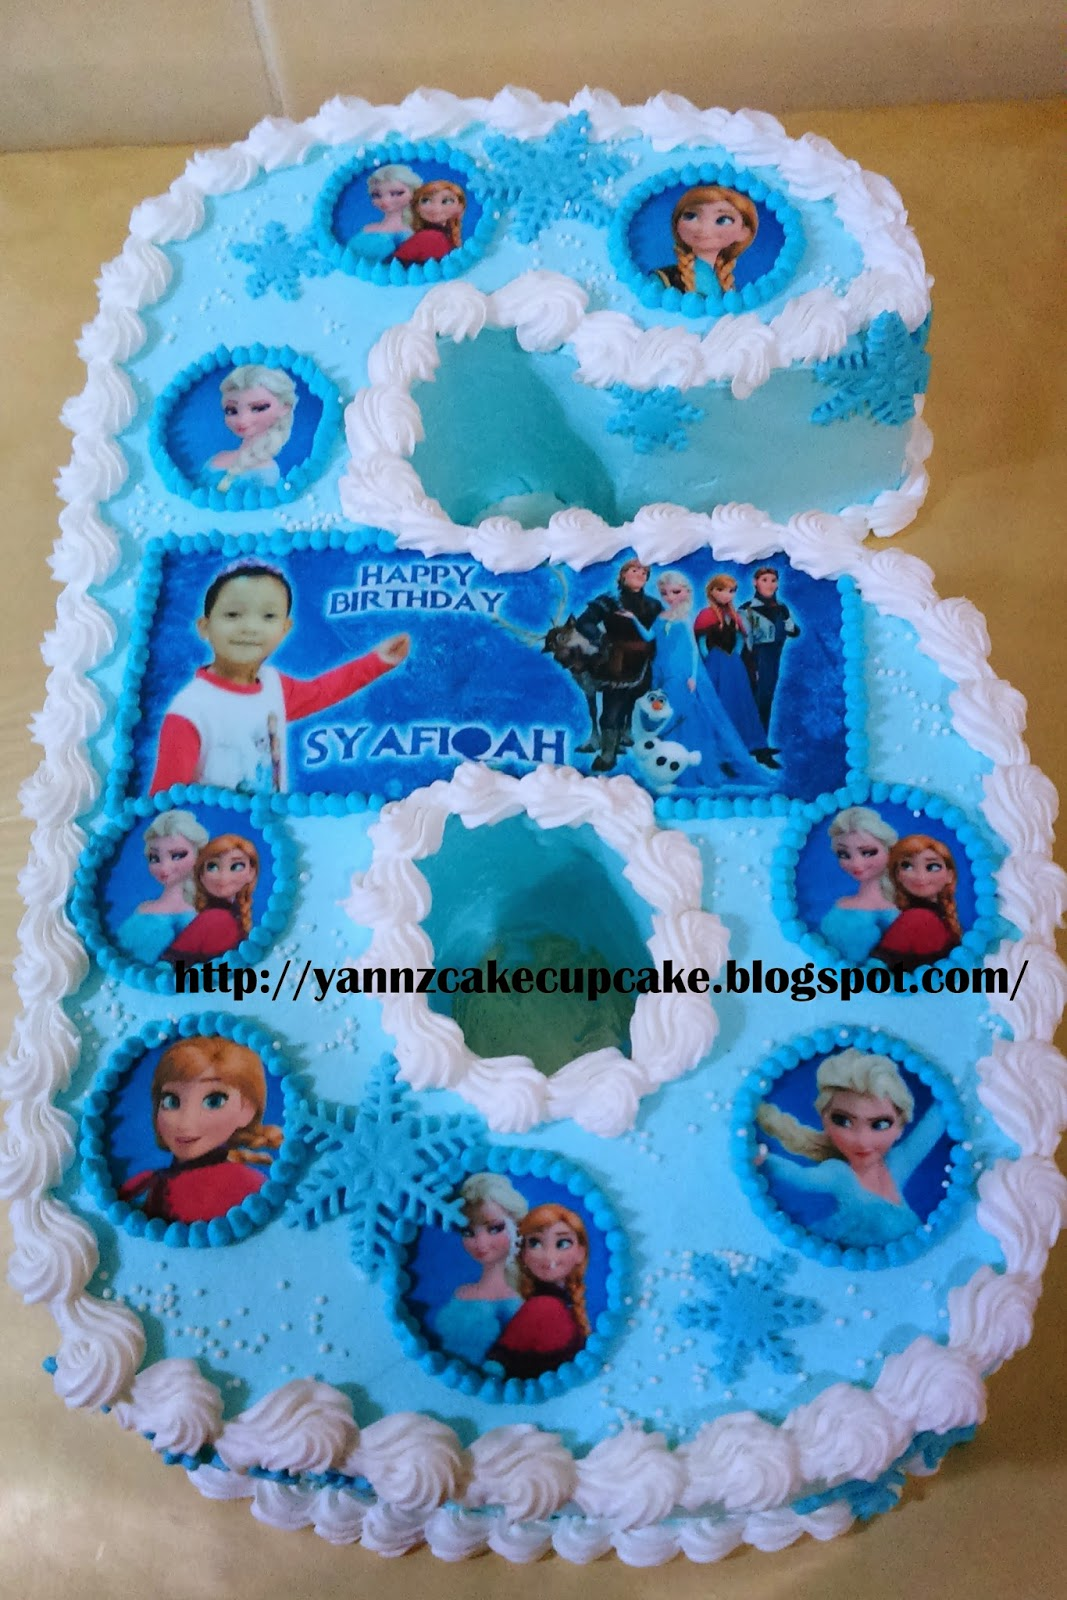 Cake Cupcake By Yannz Number 6 Cake